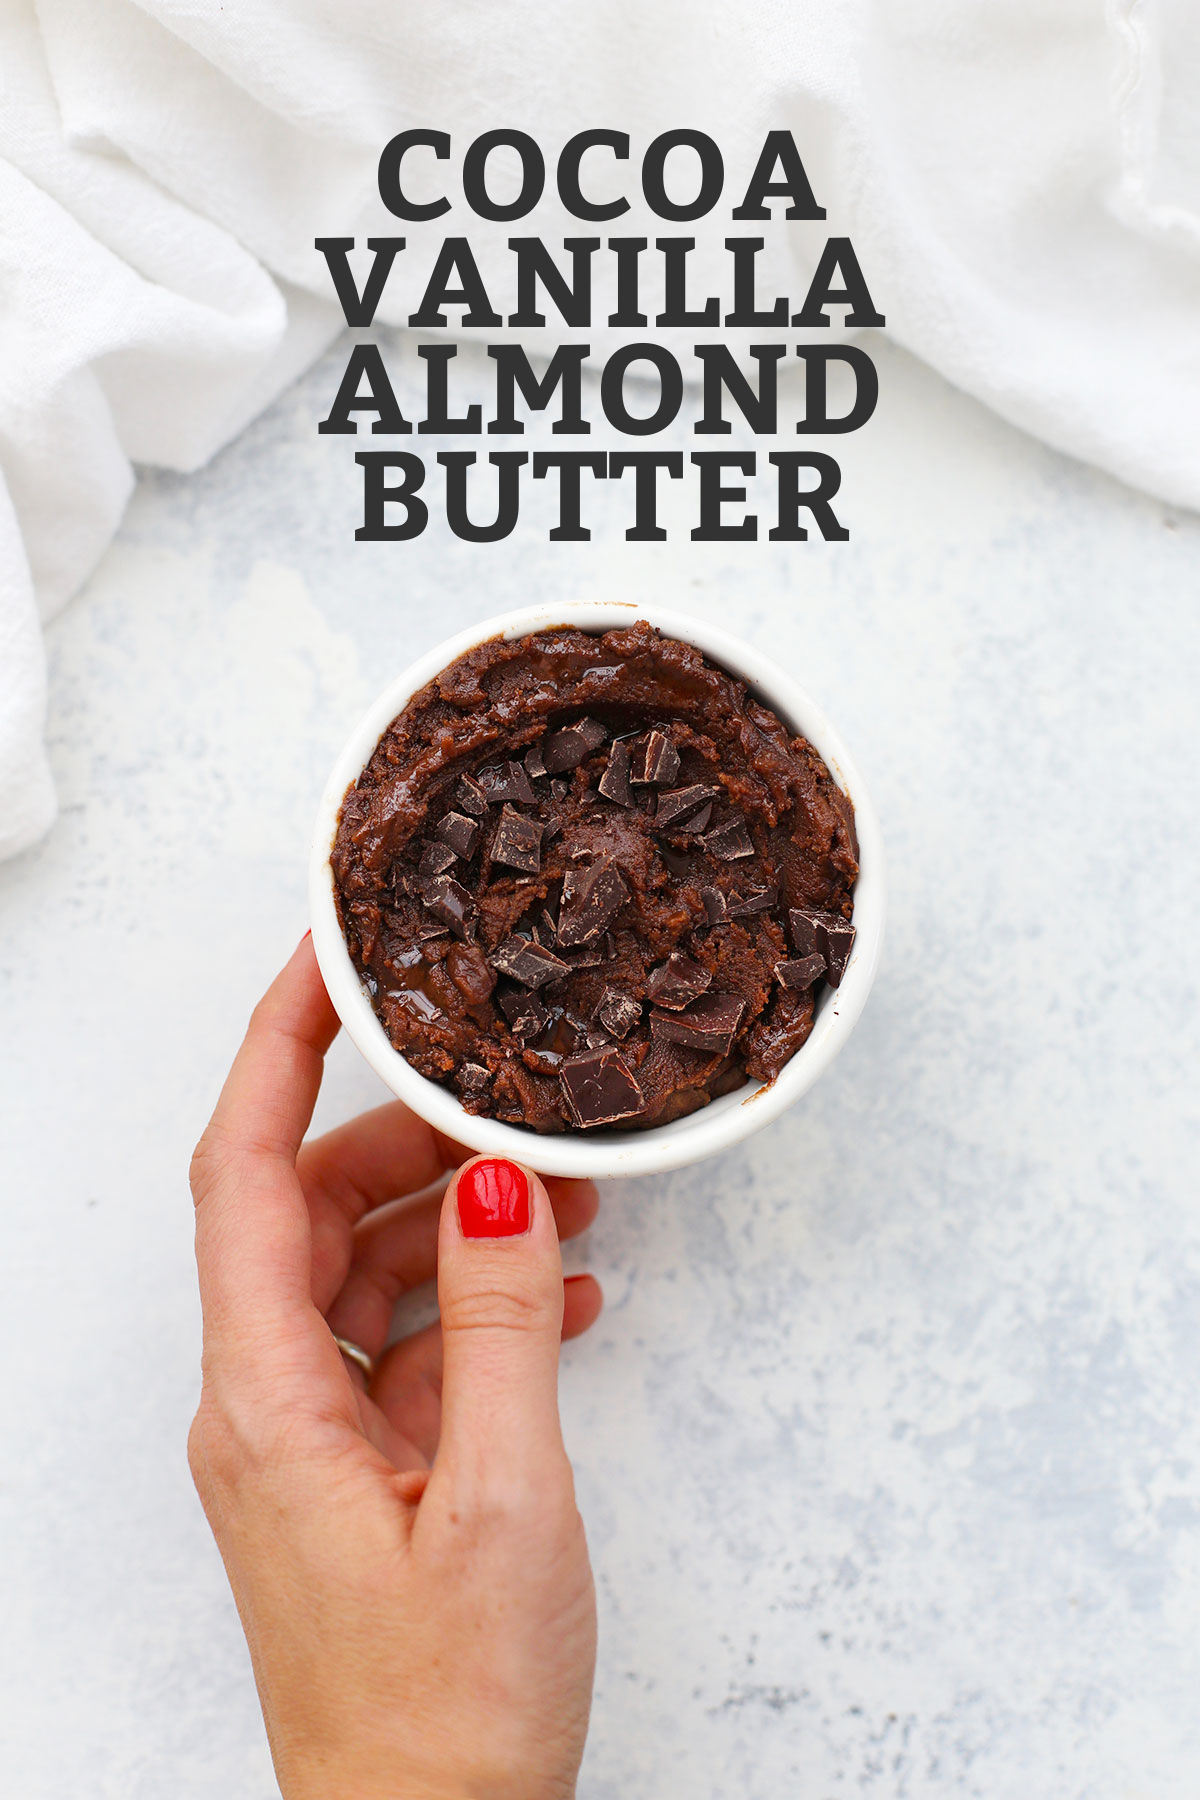 Cocoa Flavored Almond Butter from One Lovely Life